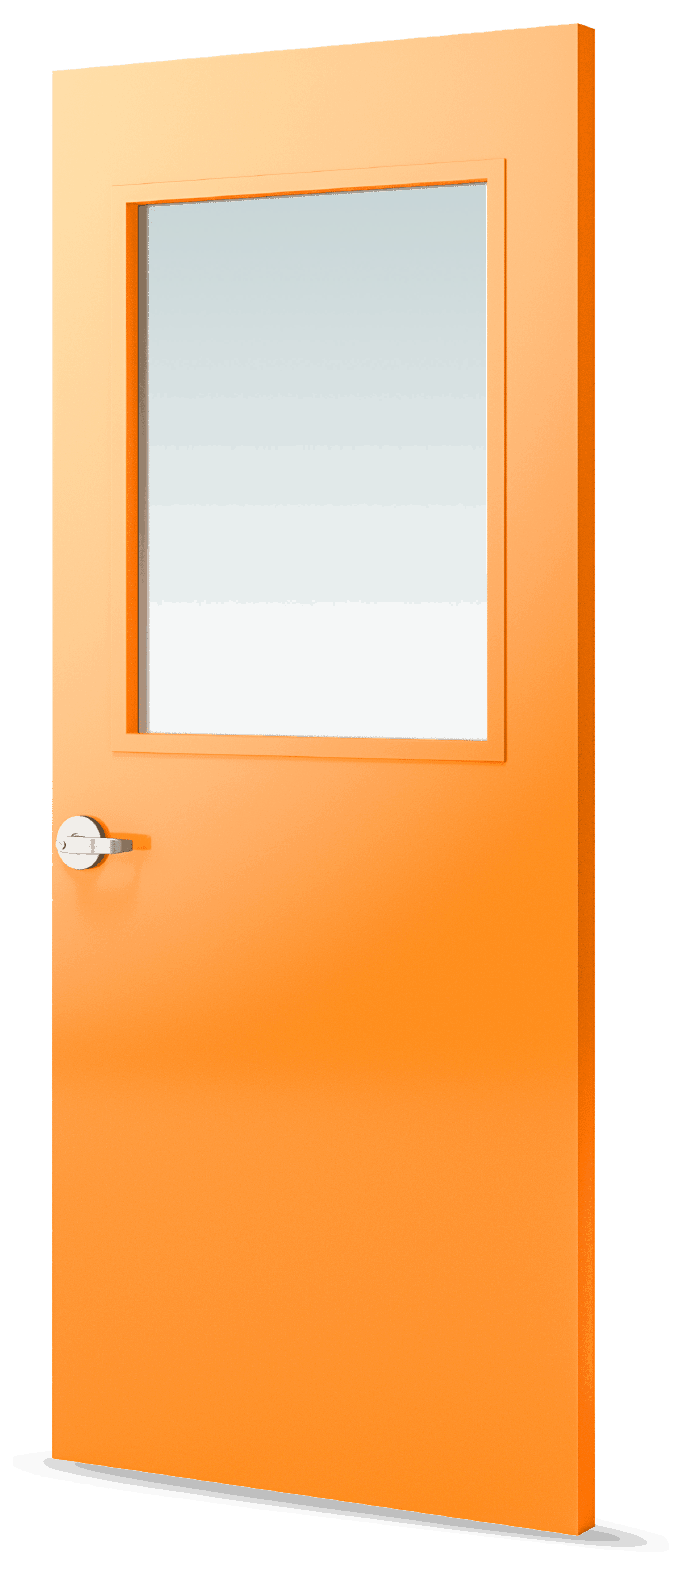 A Win for School Security: Ballistic Door Wins New Product Award